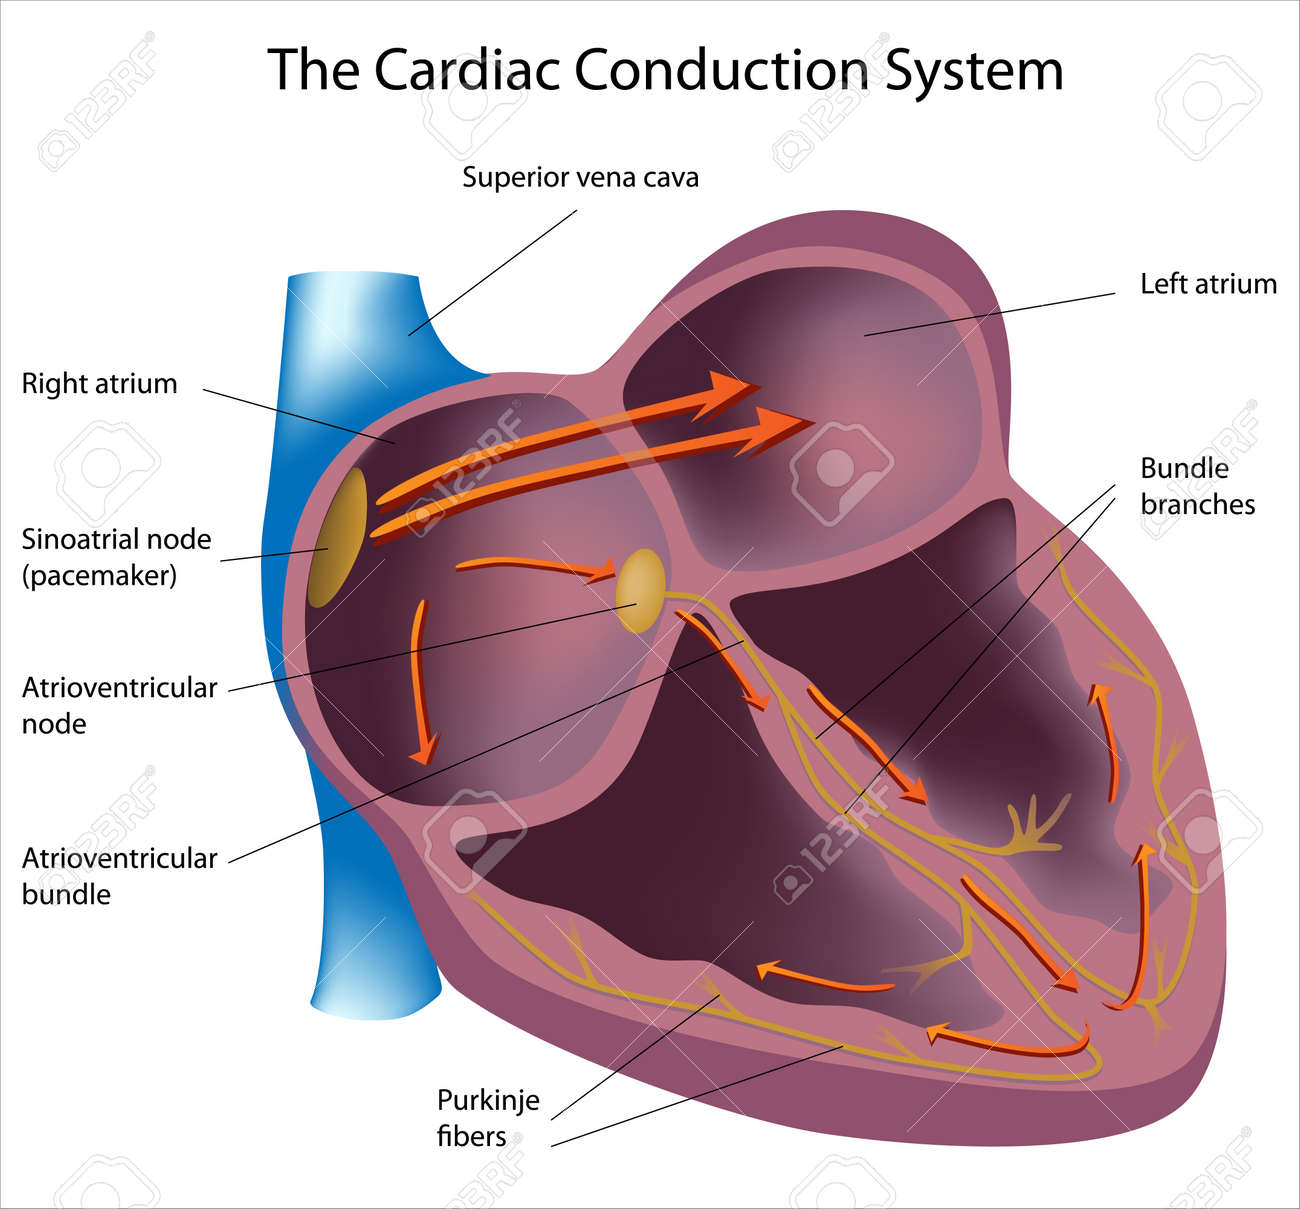 thesis chapter submitted heart myocardium scaffold The age of biomaterials: preserving the myocardium after infarction to promote heart repair and function nicholas blackburn a thesis submitted to the.